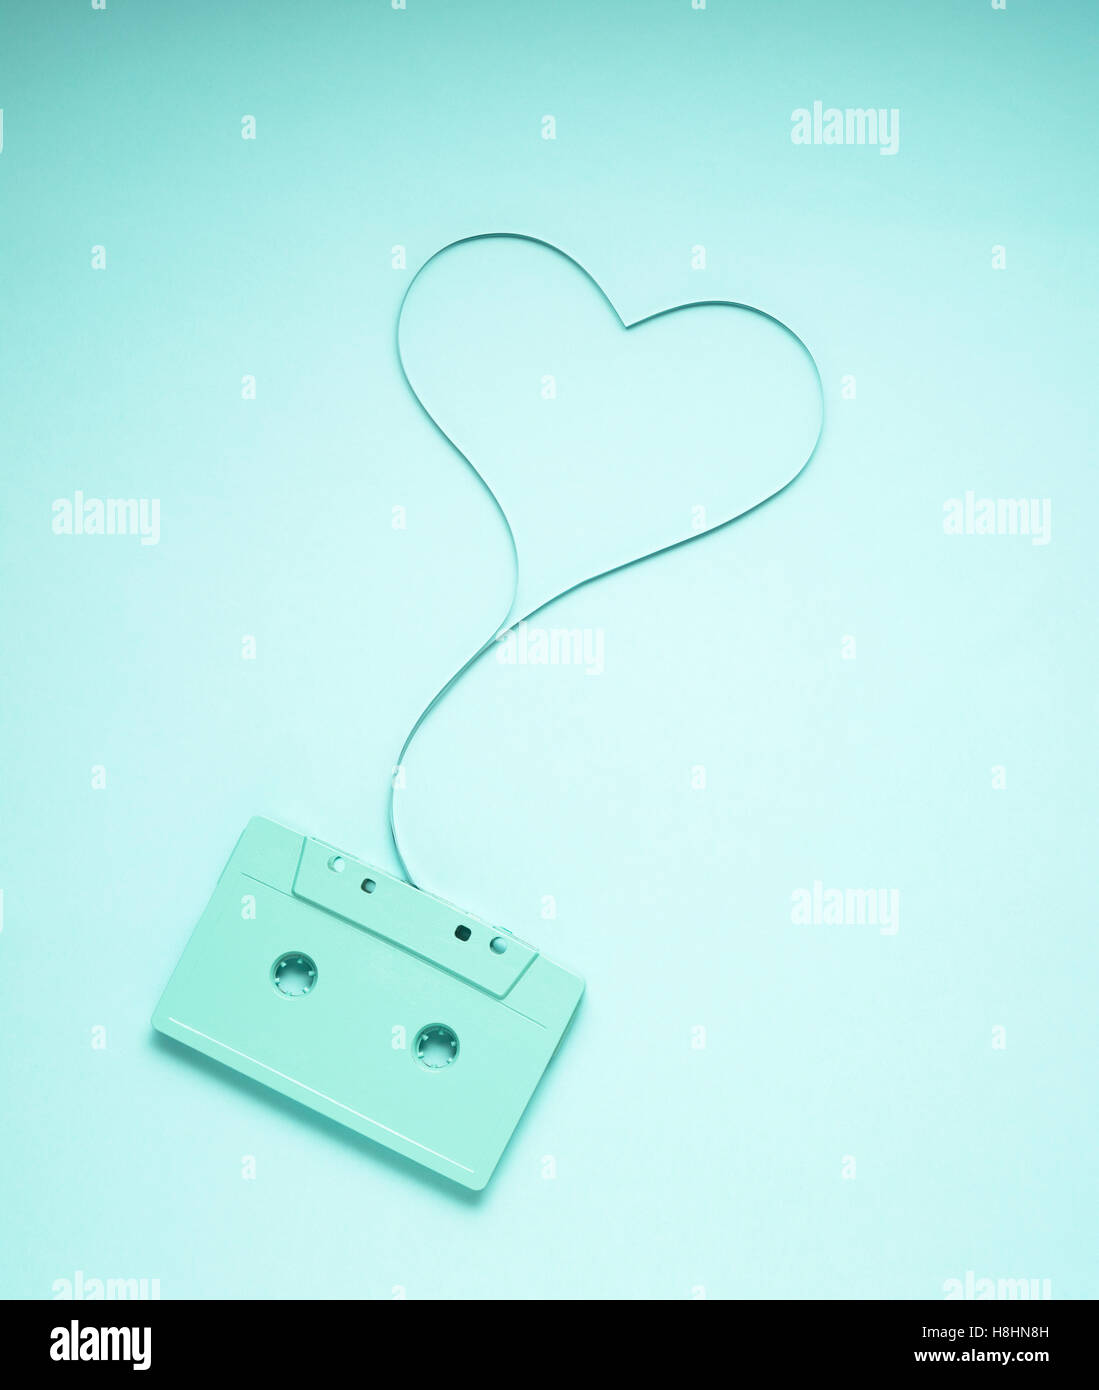 Heart Sound Stock Photos & Heart Sound Stock Images - Alamy